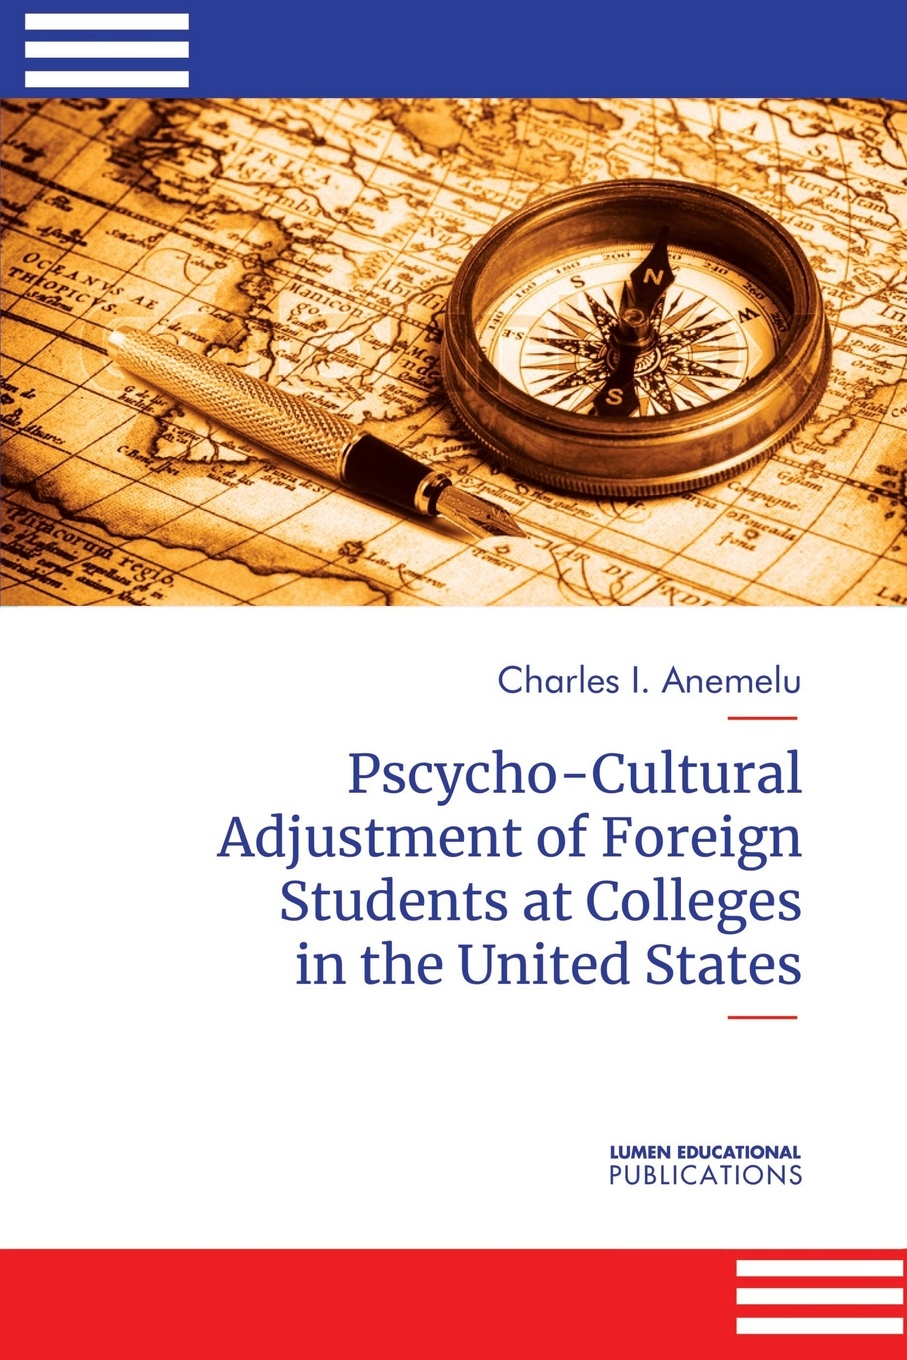 Charles I. Anemelu Psycho-Cultural Adjustment of Foreign Students at Community Colleges in the United States psychological adjustment of bangladeshi students at iiu malaysia